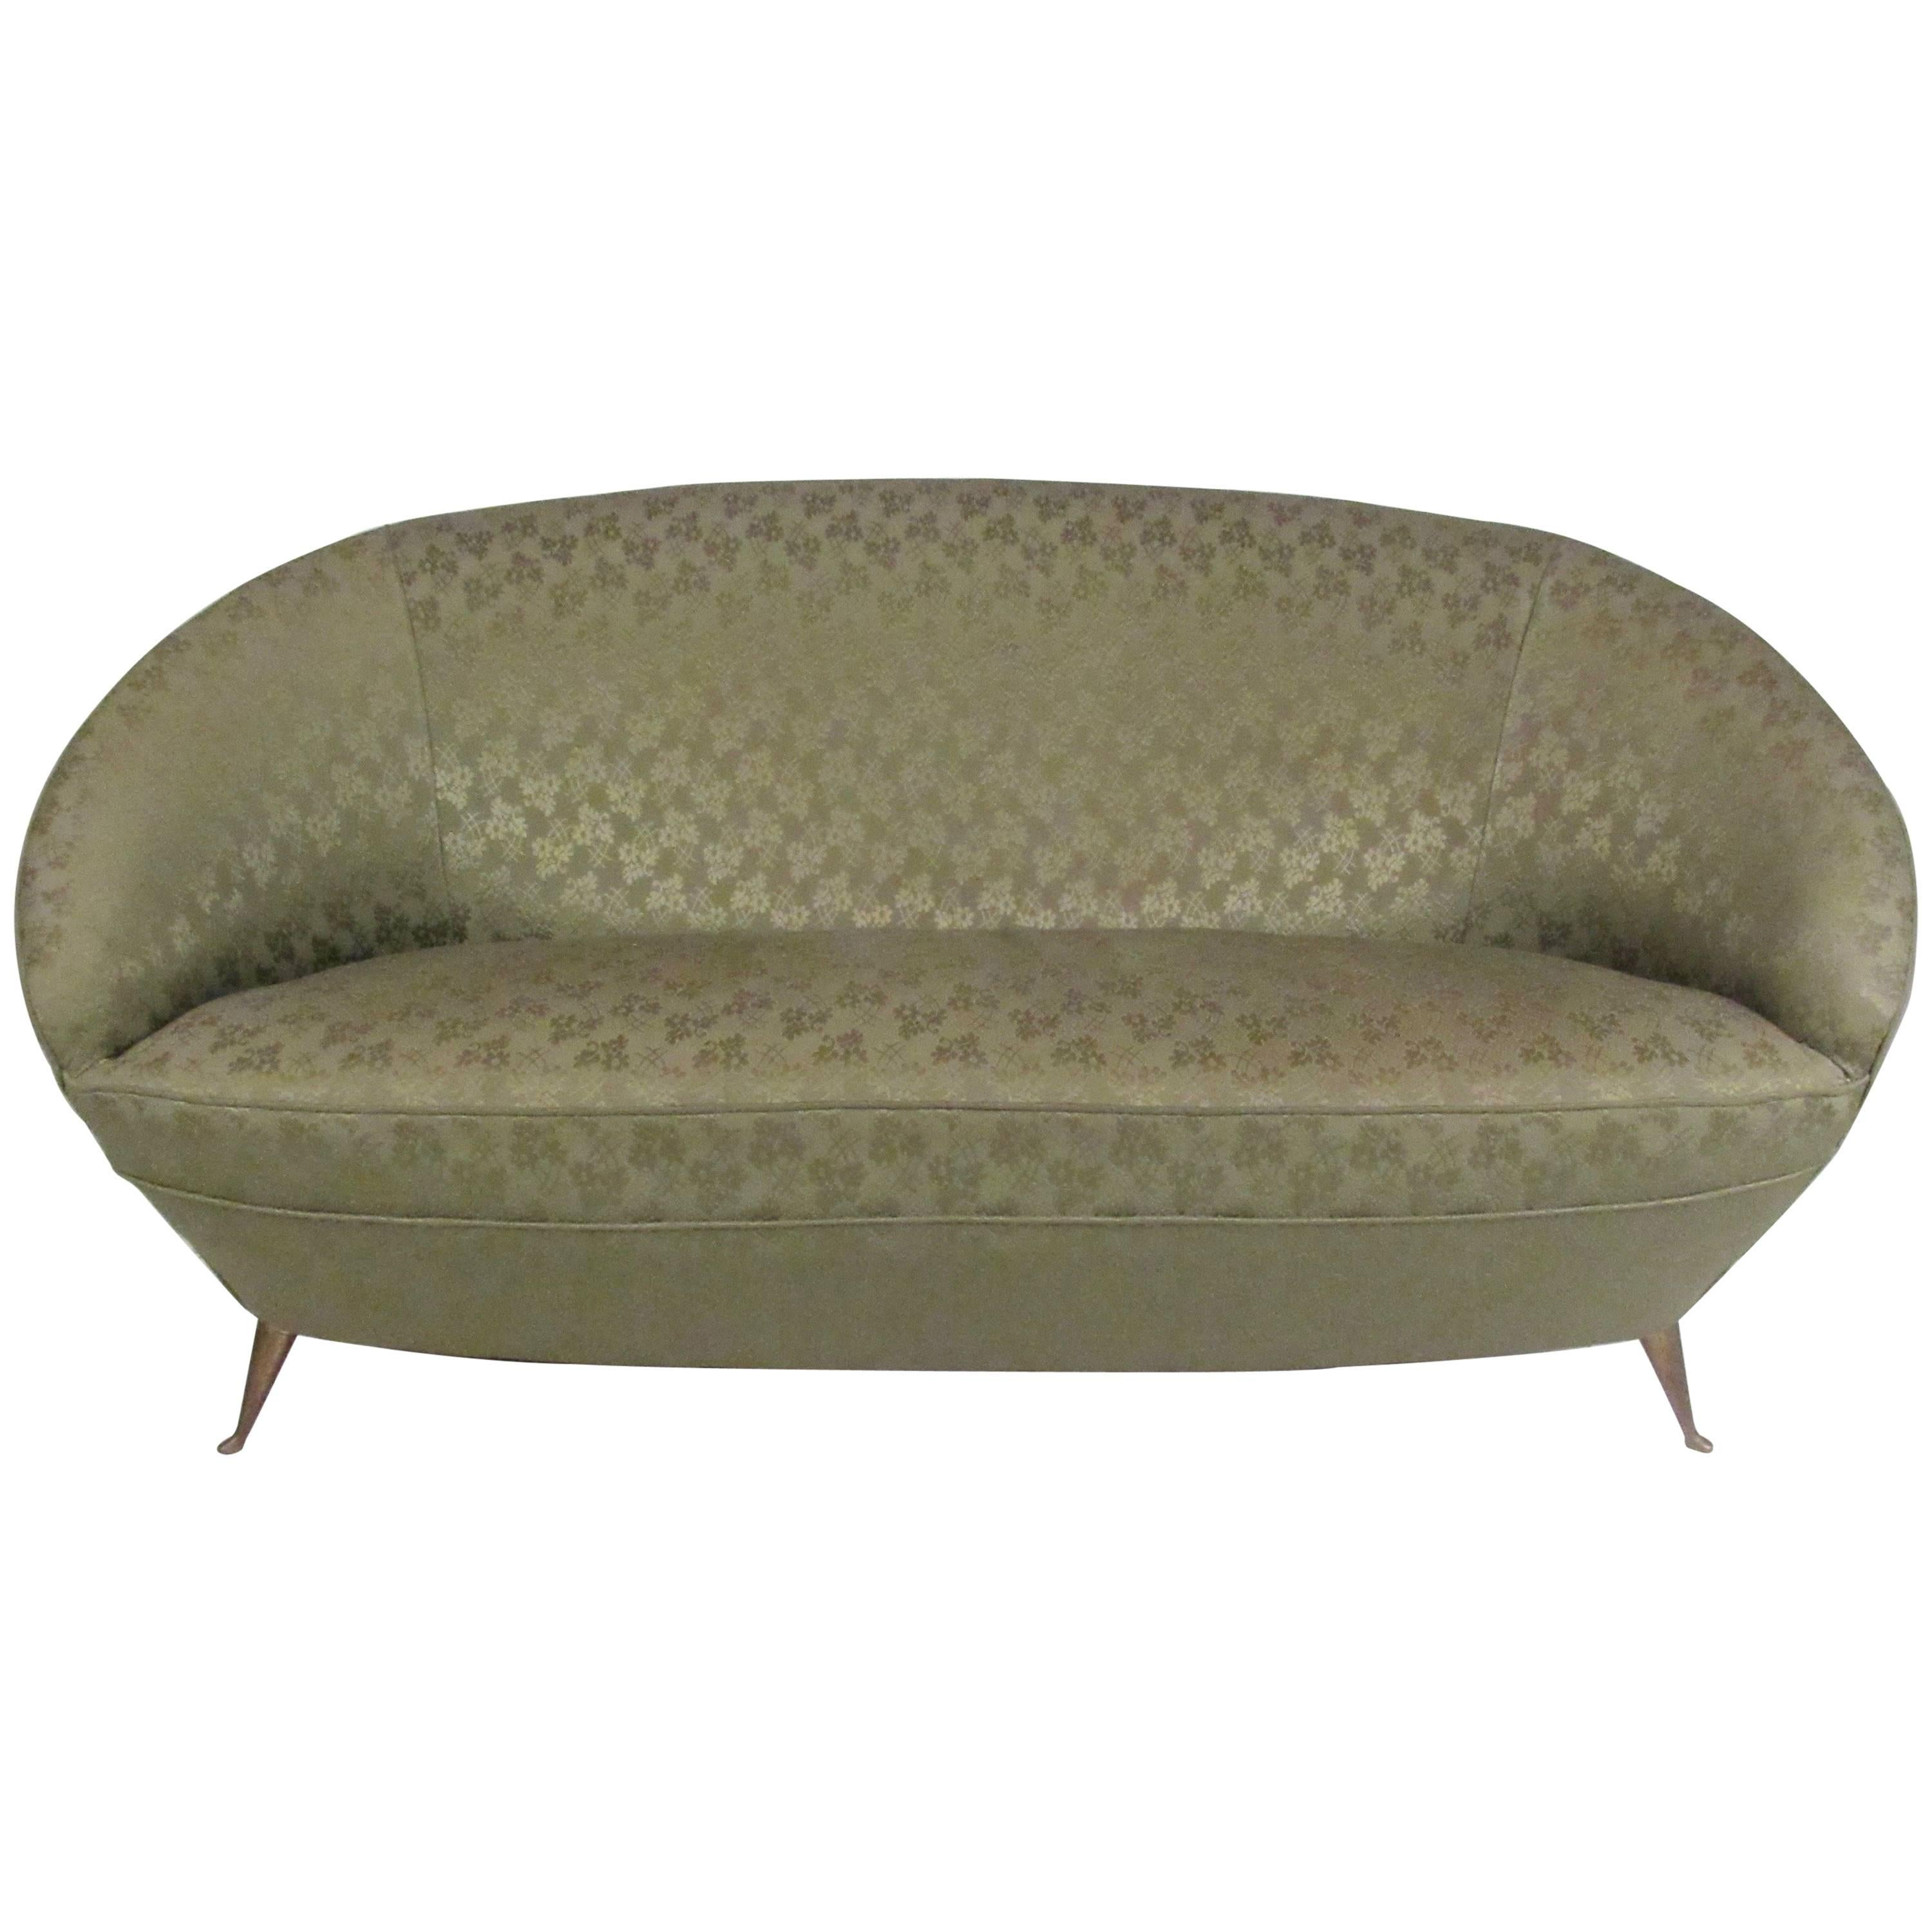 Curved Loveseat fortable Curved Loveseat With Stunning Design